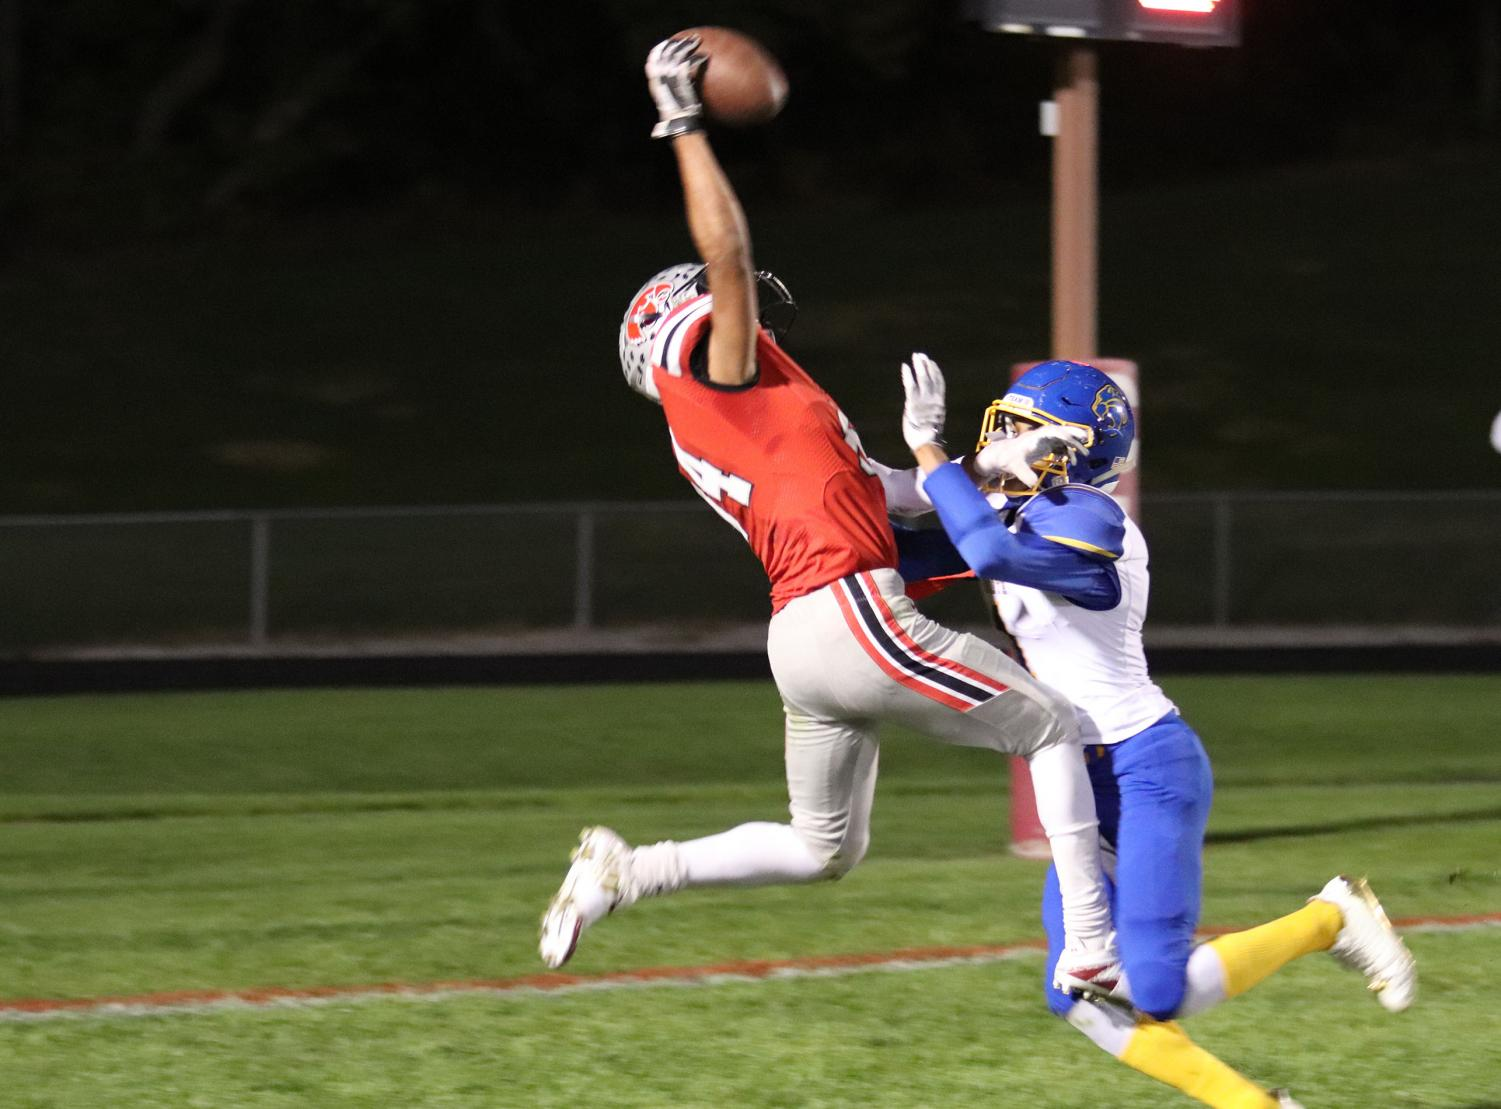 #84 Zach Jones catches a touchdown pass in his final game game against Davenport North where he broke the City High wide receiver record.